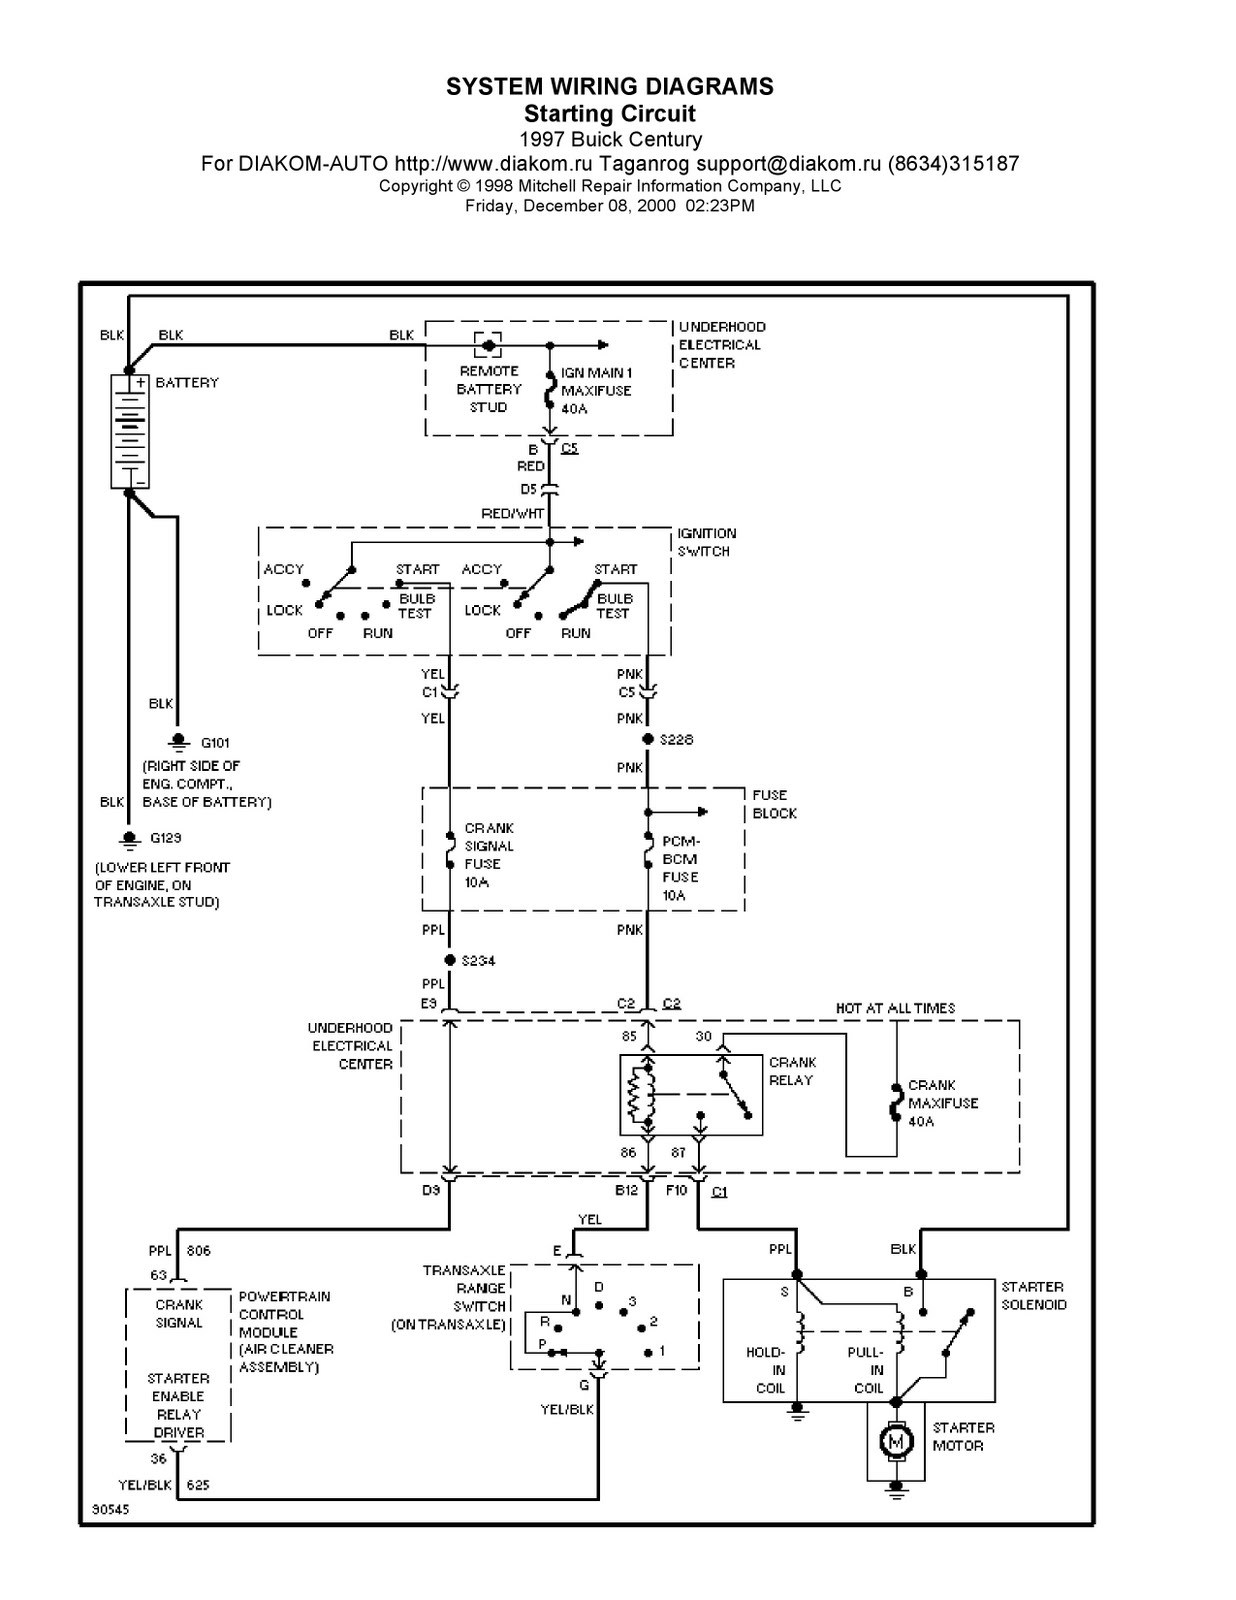 Diagram 1996 Buick Century Wiring Diagram Full Version Hd Quality Wiring Diagram Ricodiagrambas Kuteportal Fr